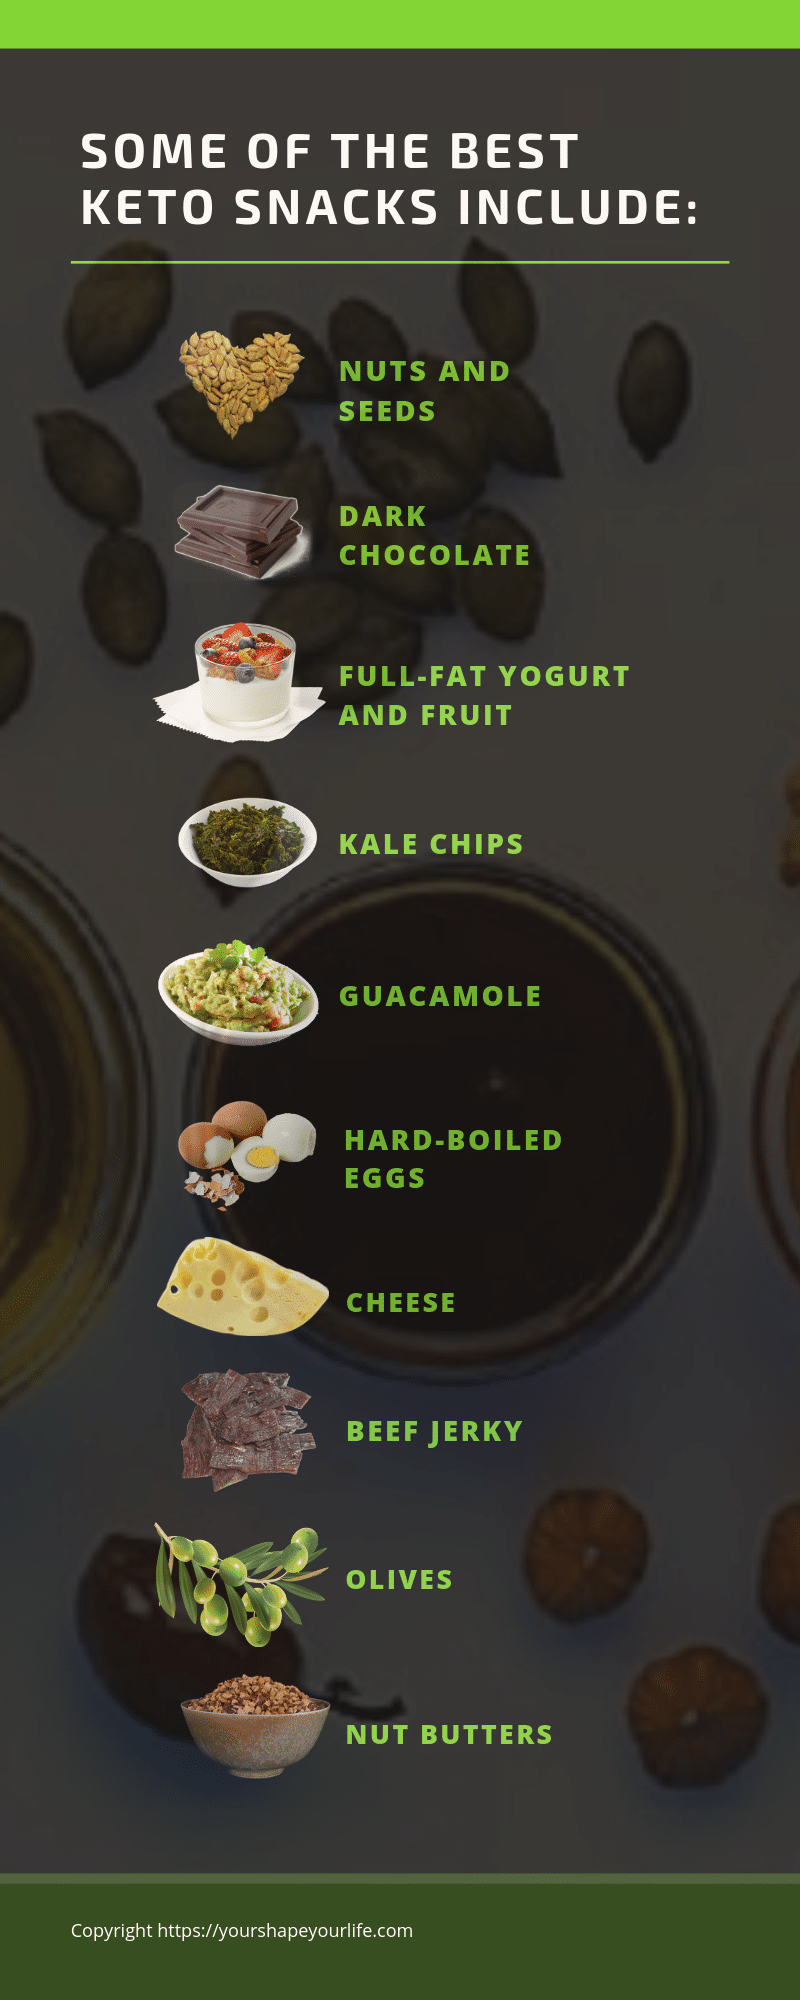 Some of the best keto snacks include: